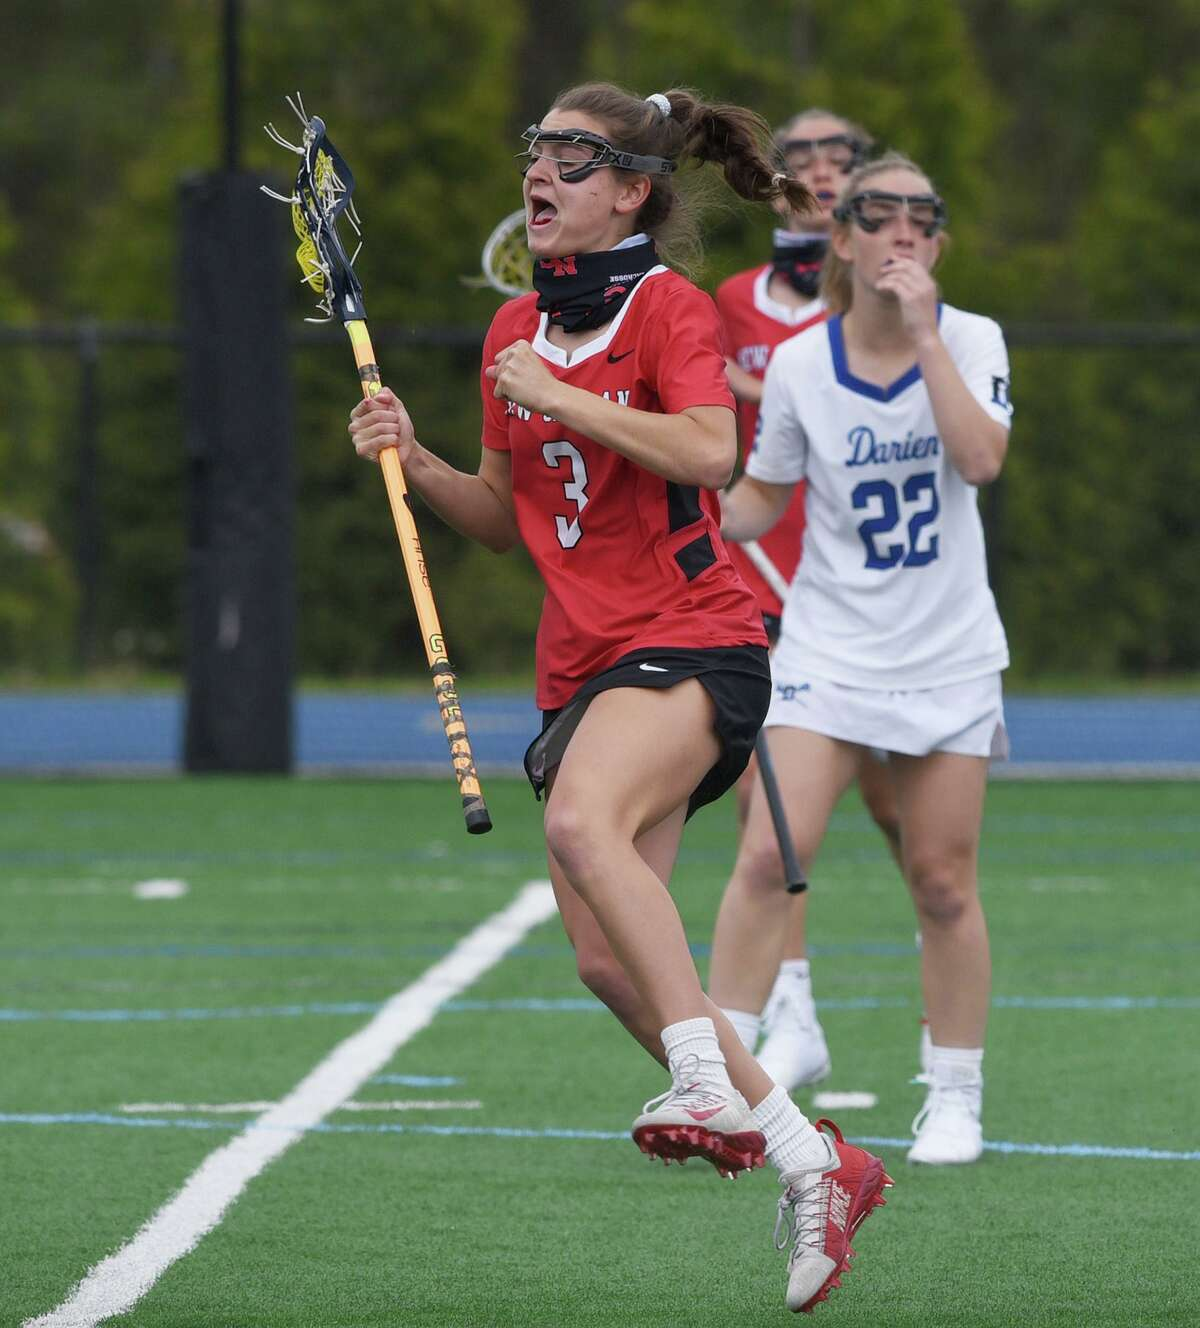 New Canaan's Dillyn Patten celebrates a goal during the Rams' 10-9 overtime victory over Darien on Monday.